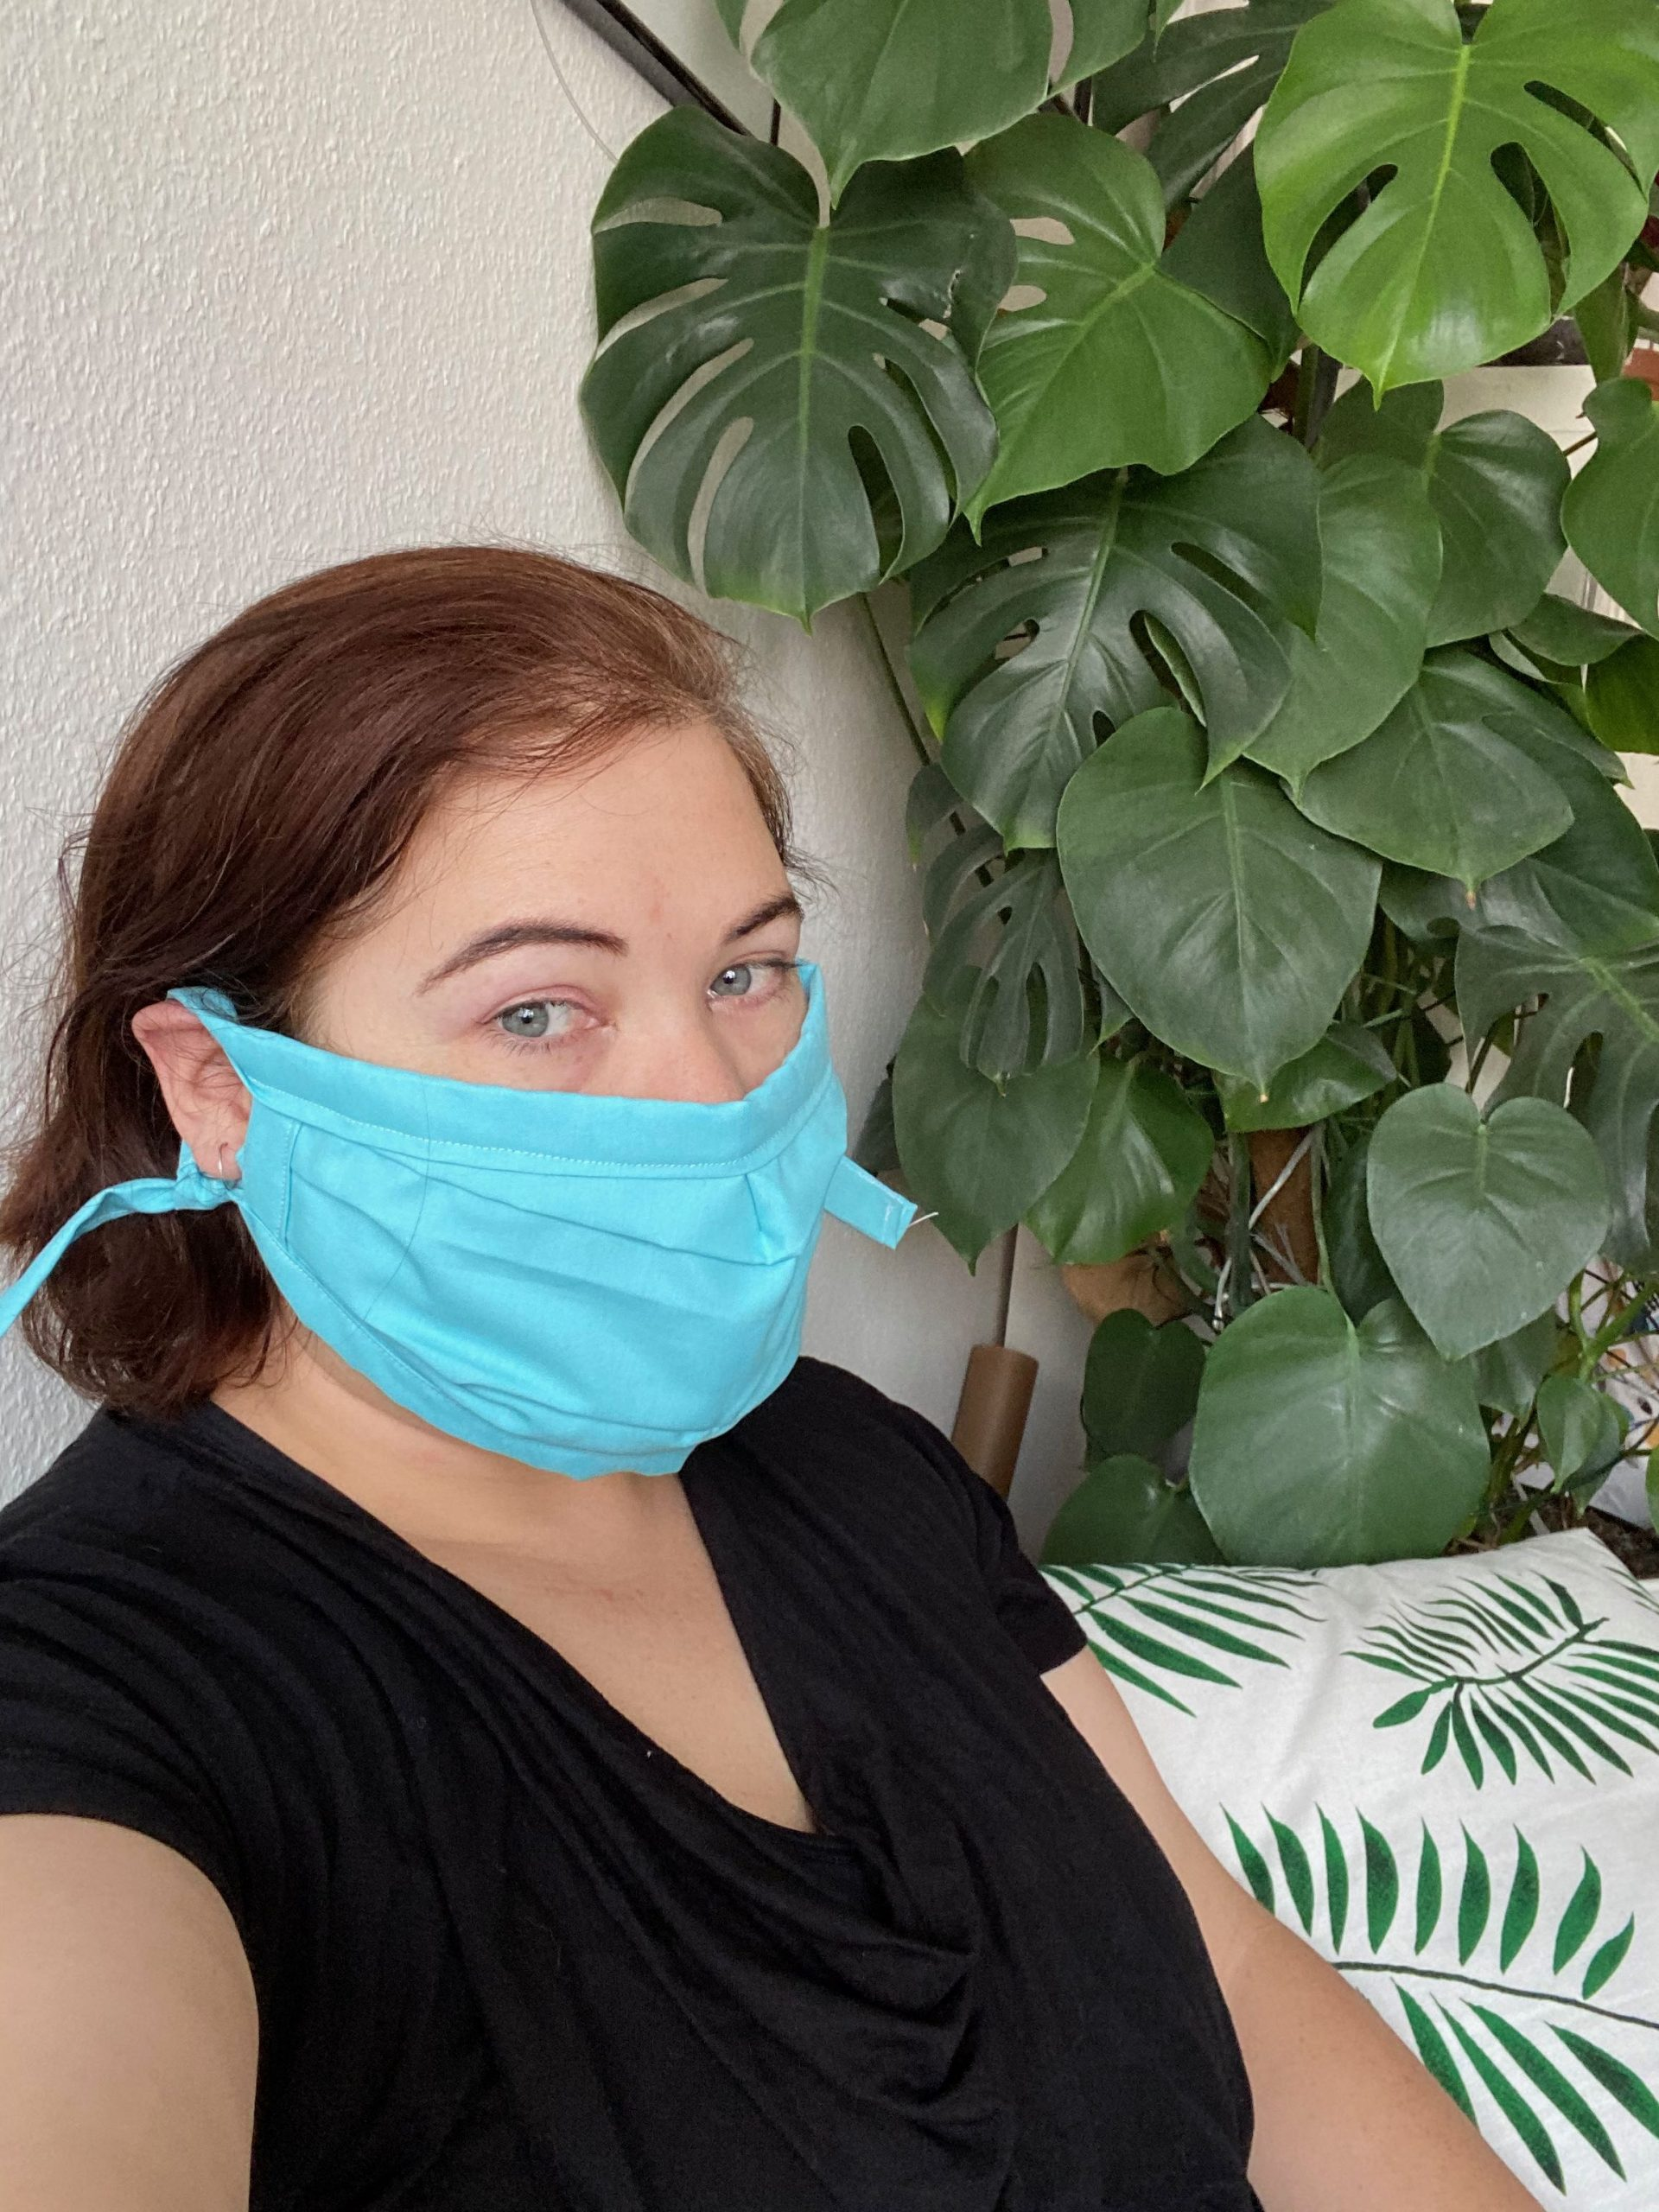 Homemade face masks for that quarantine chic